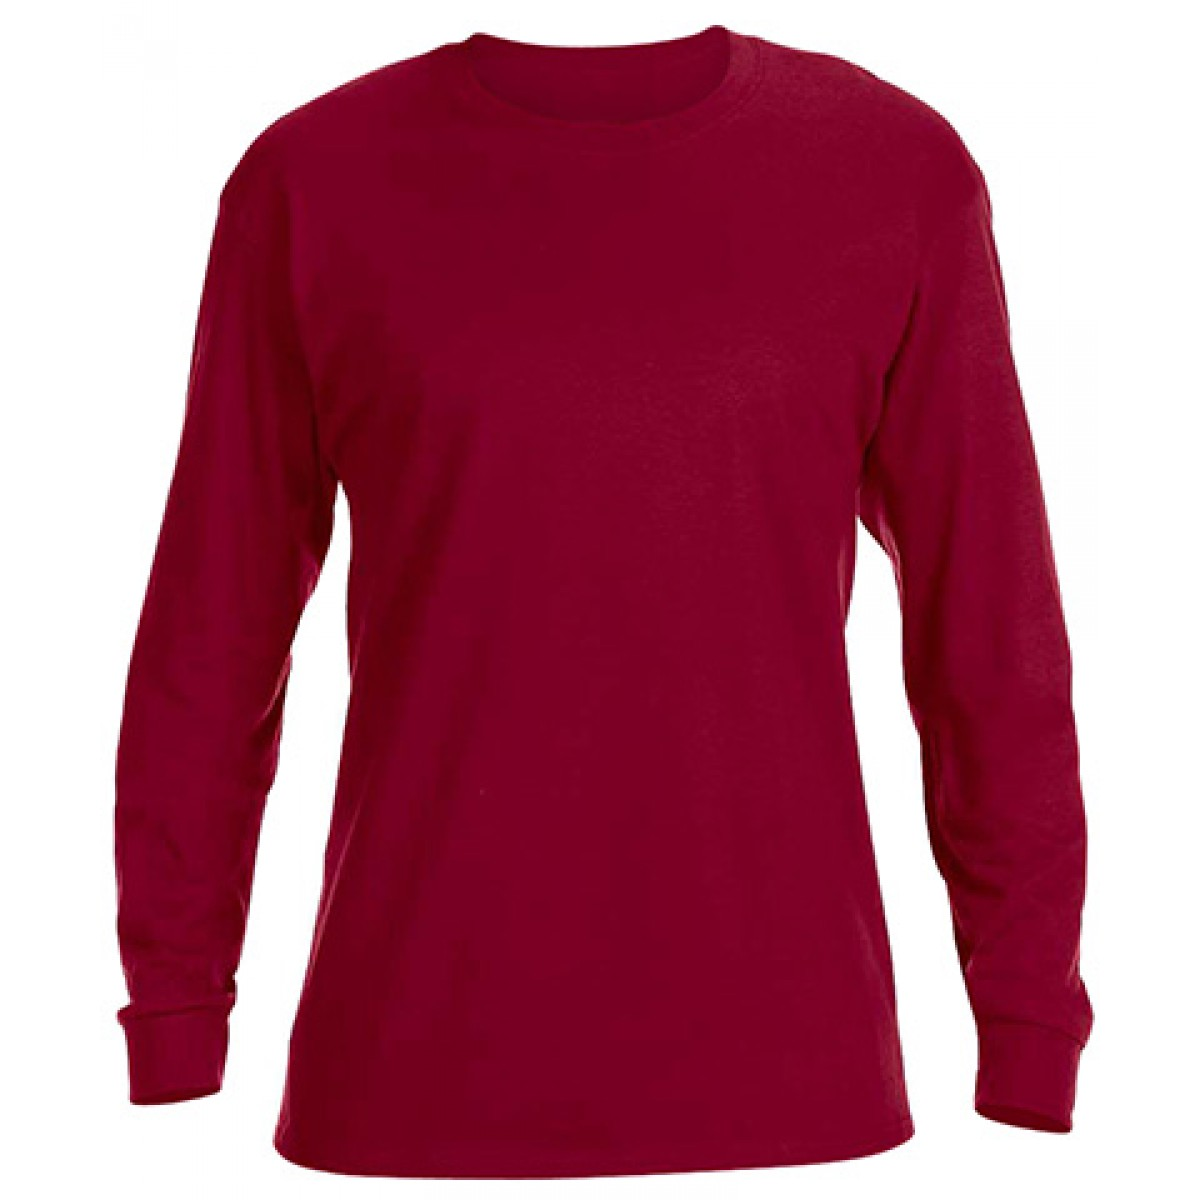 Heavy Cotton Long-Sleeve Adidas Shirt-Red-2XL